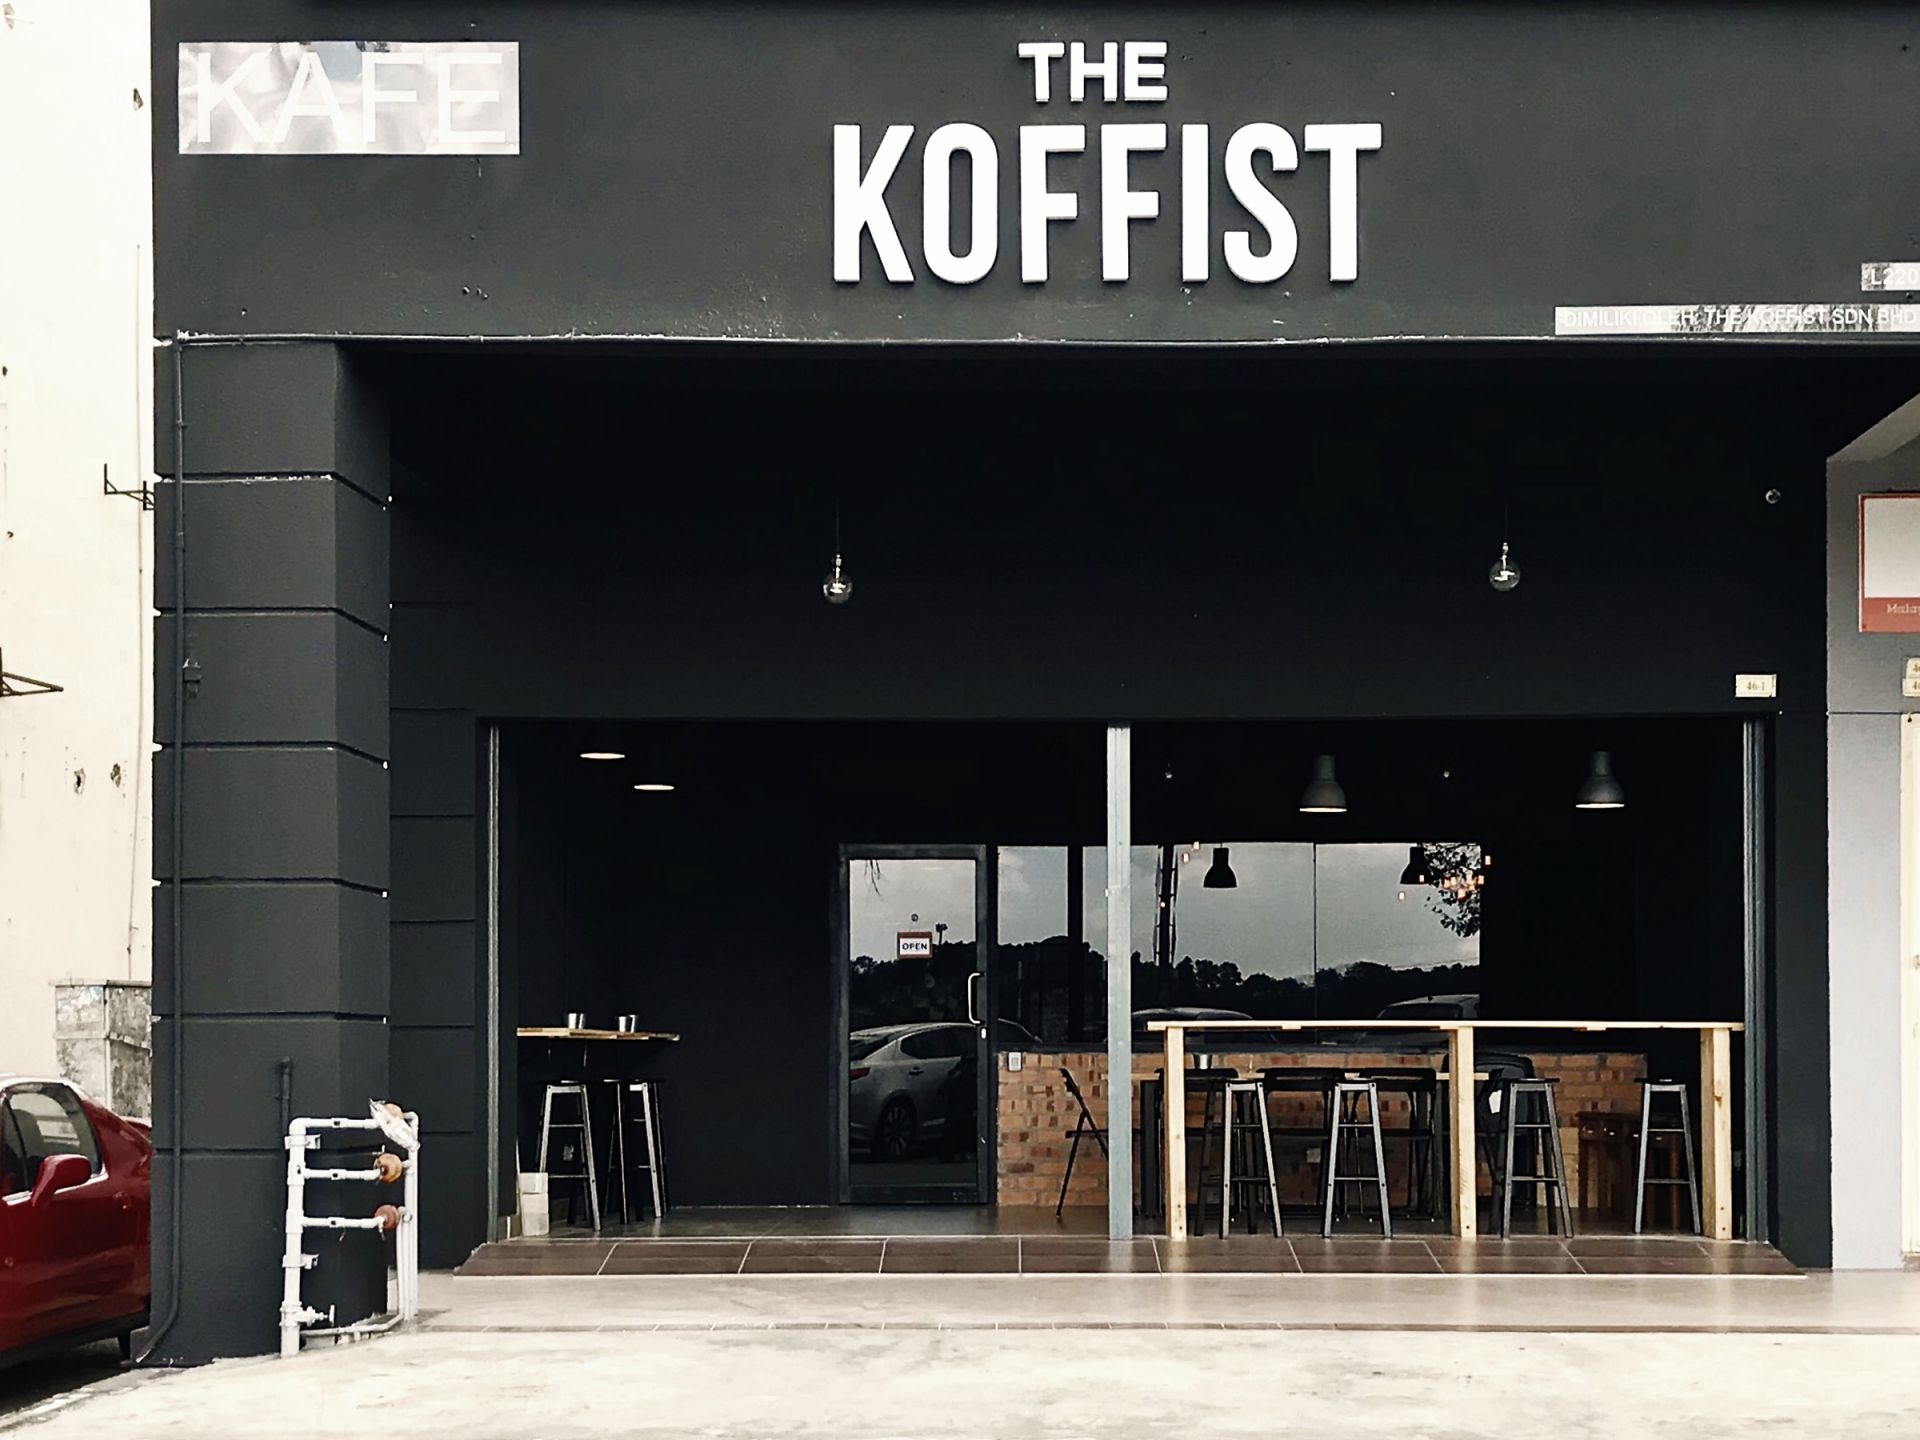 The Koffist, Petaling Jaya